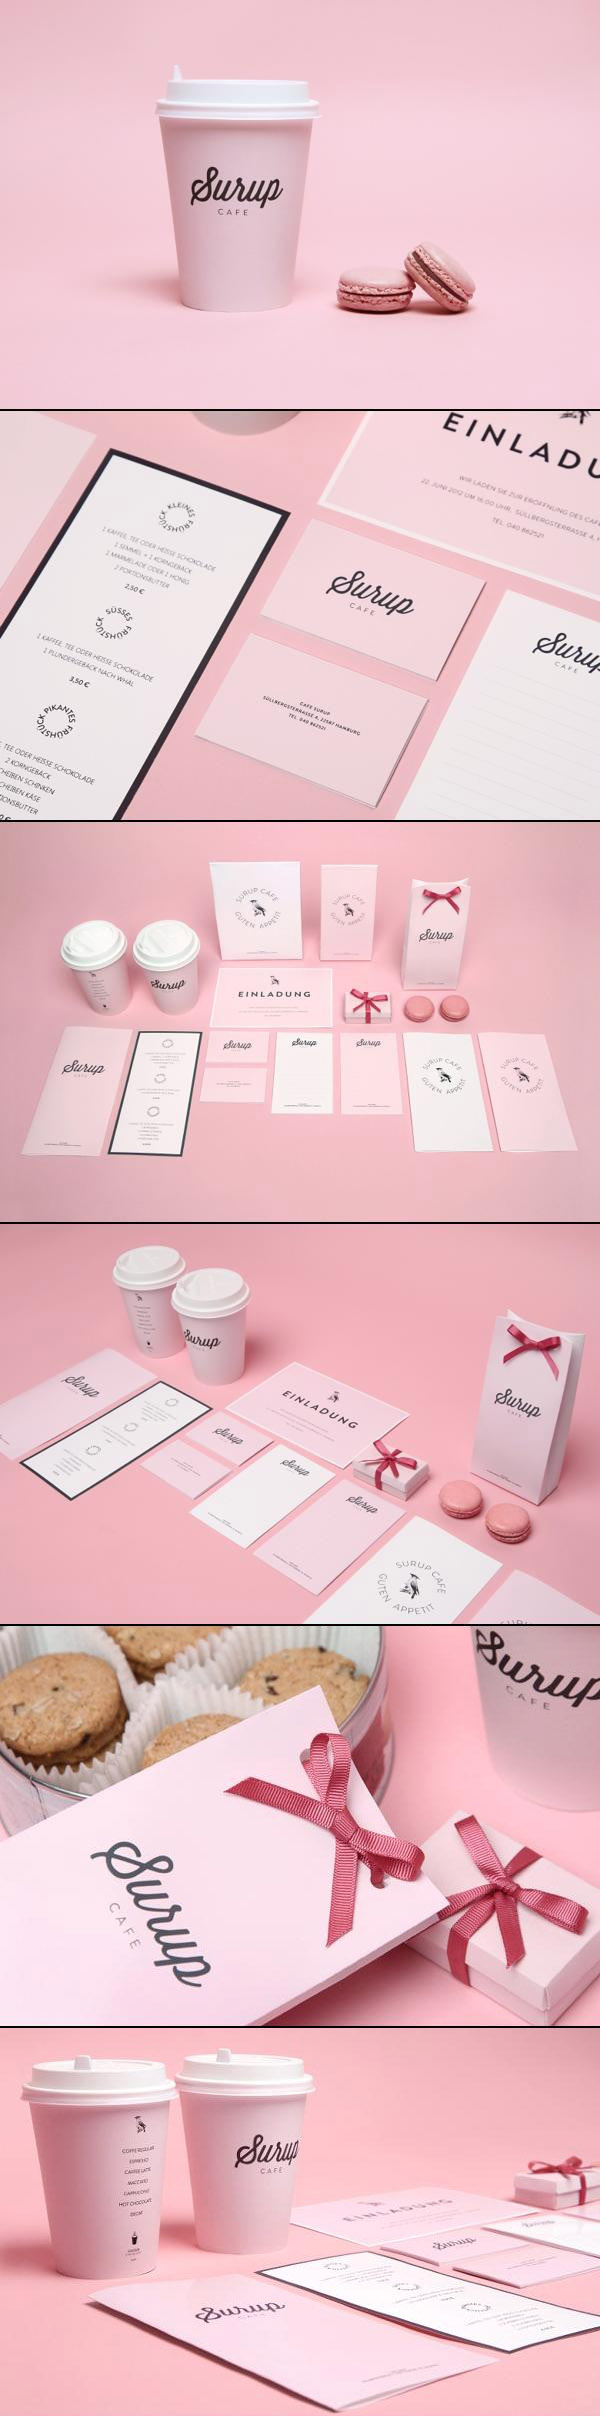 22-surup-cafe-best-branding-identity-design